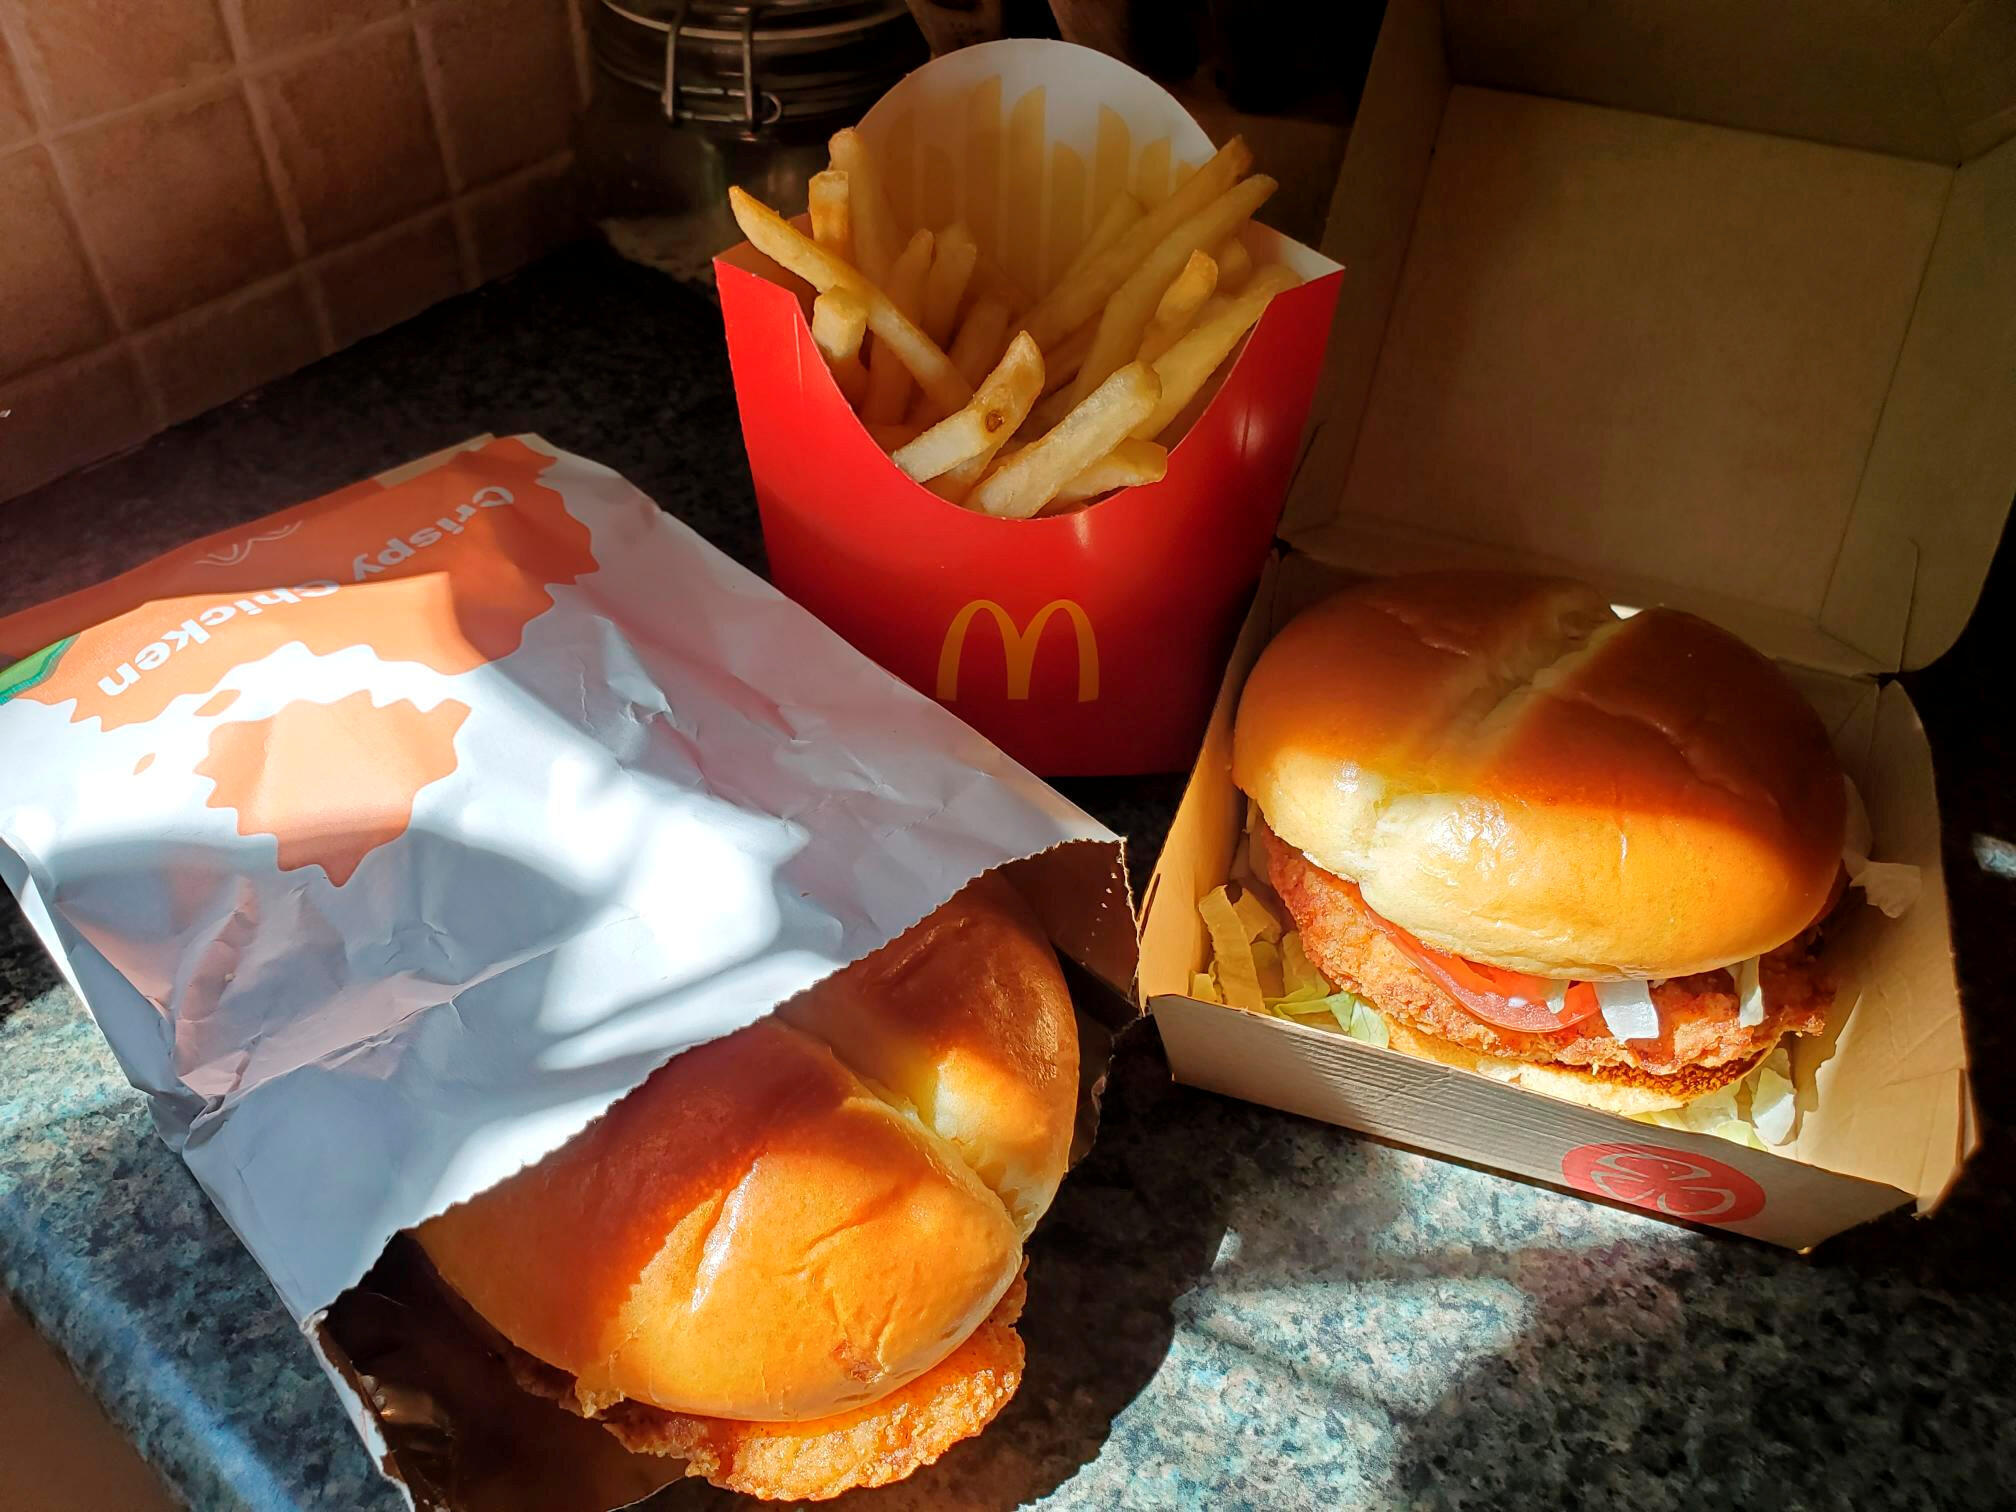 2021-03-31T100027Z_2020436072_RC2AMM9F1PDR_RTRMADP_3_FAST-FOOD-DELIVERY-CRISPY